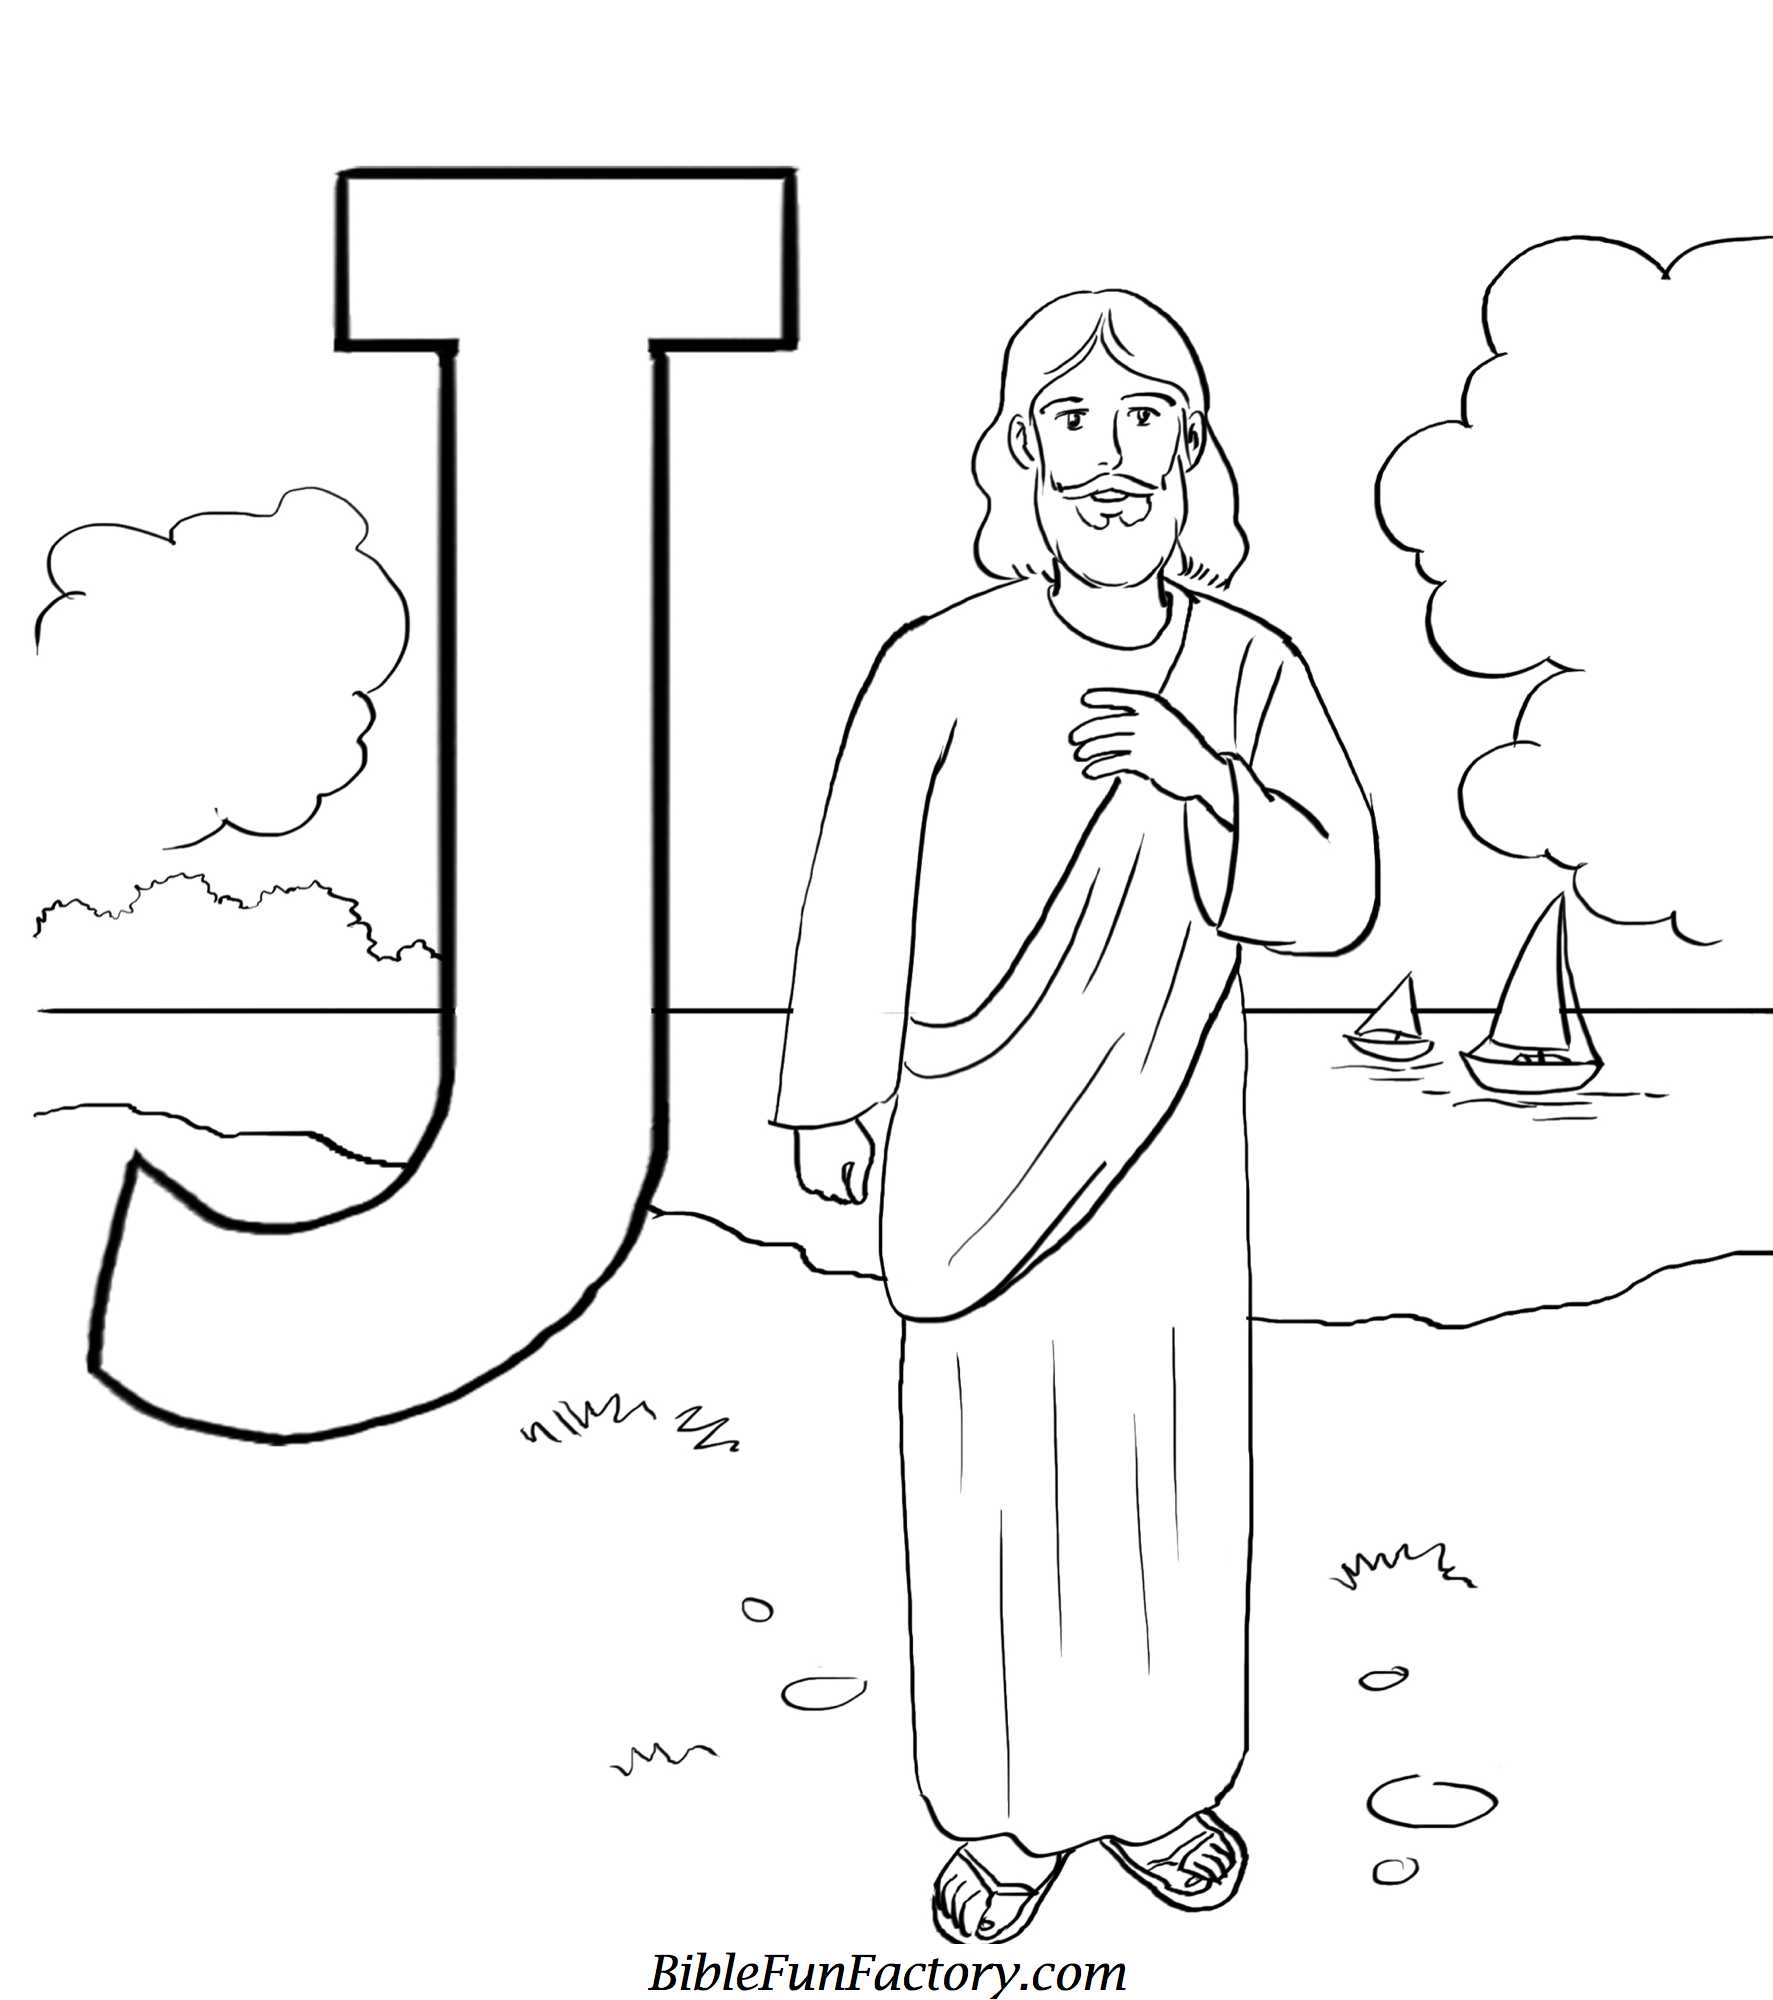 Coloring Pages : Childrens Coloring Bible Free Jesus Pages Lessons - Free Printable Children's Bible Lessons